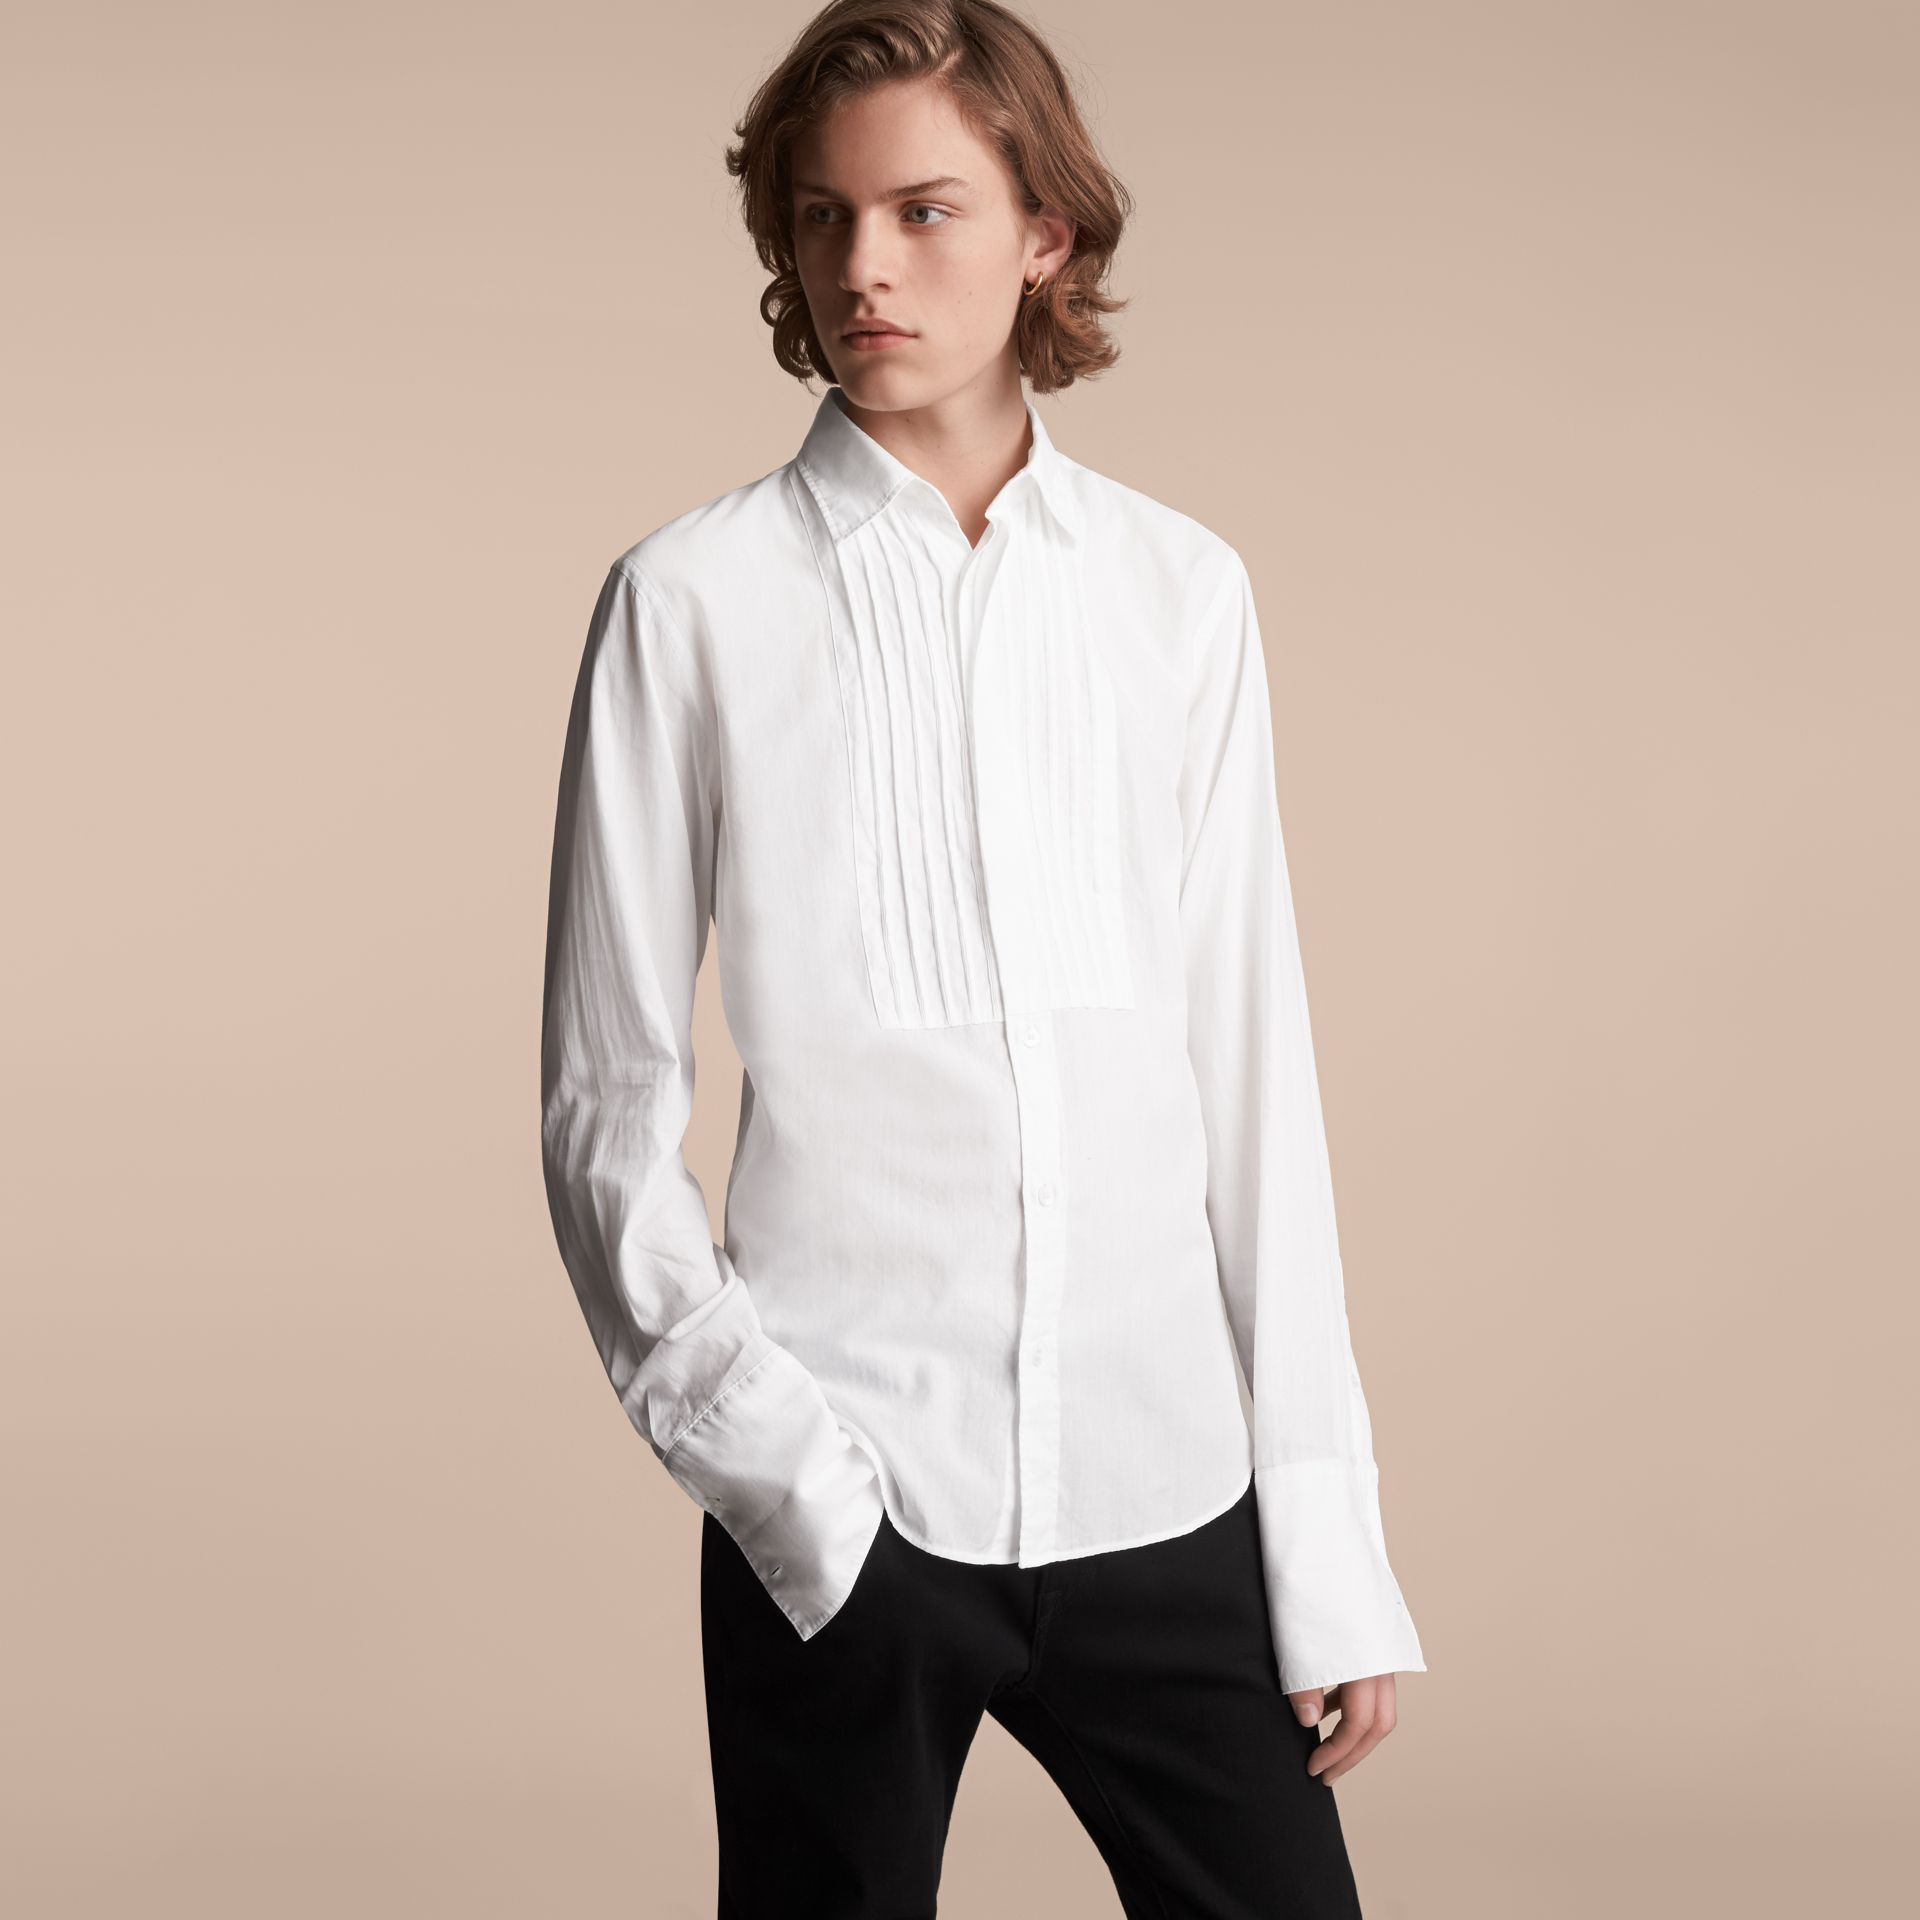 Unisex Double-cuff Pintuck Bib Cotton Shirt in White - Men | Burberry - gallery image 6